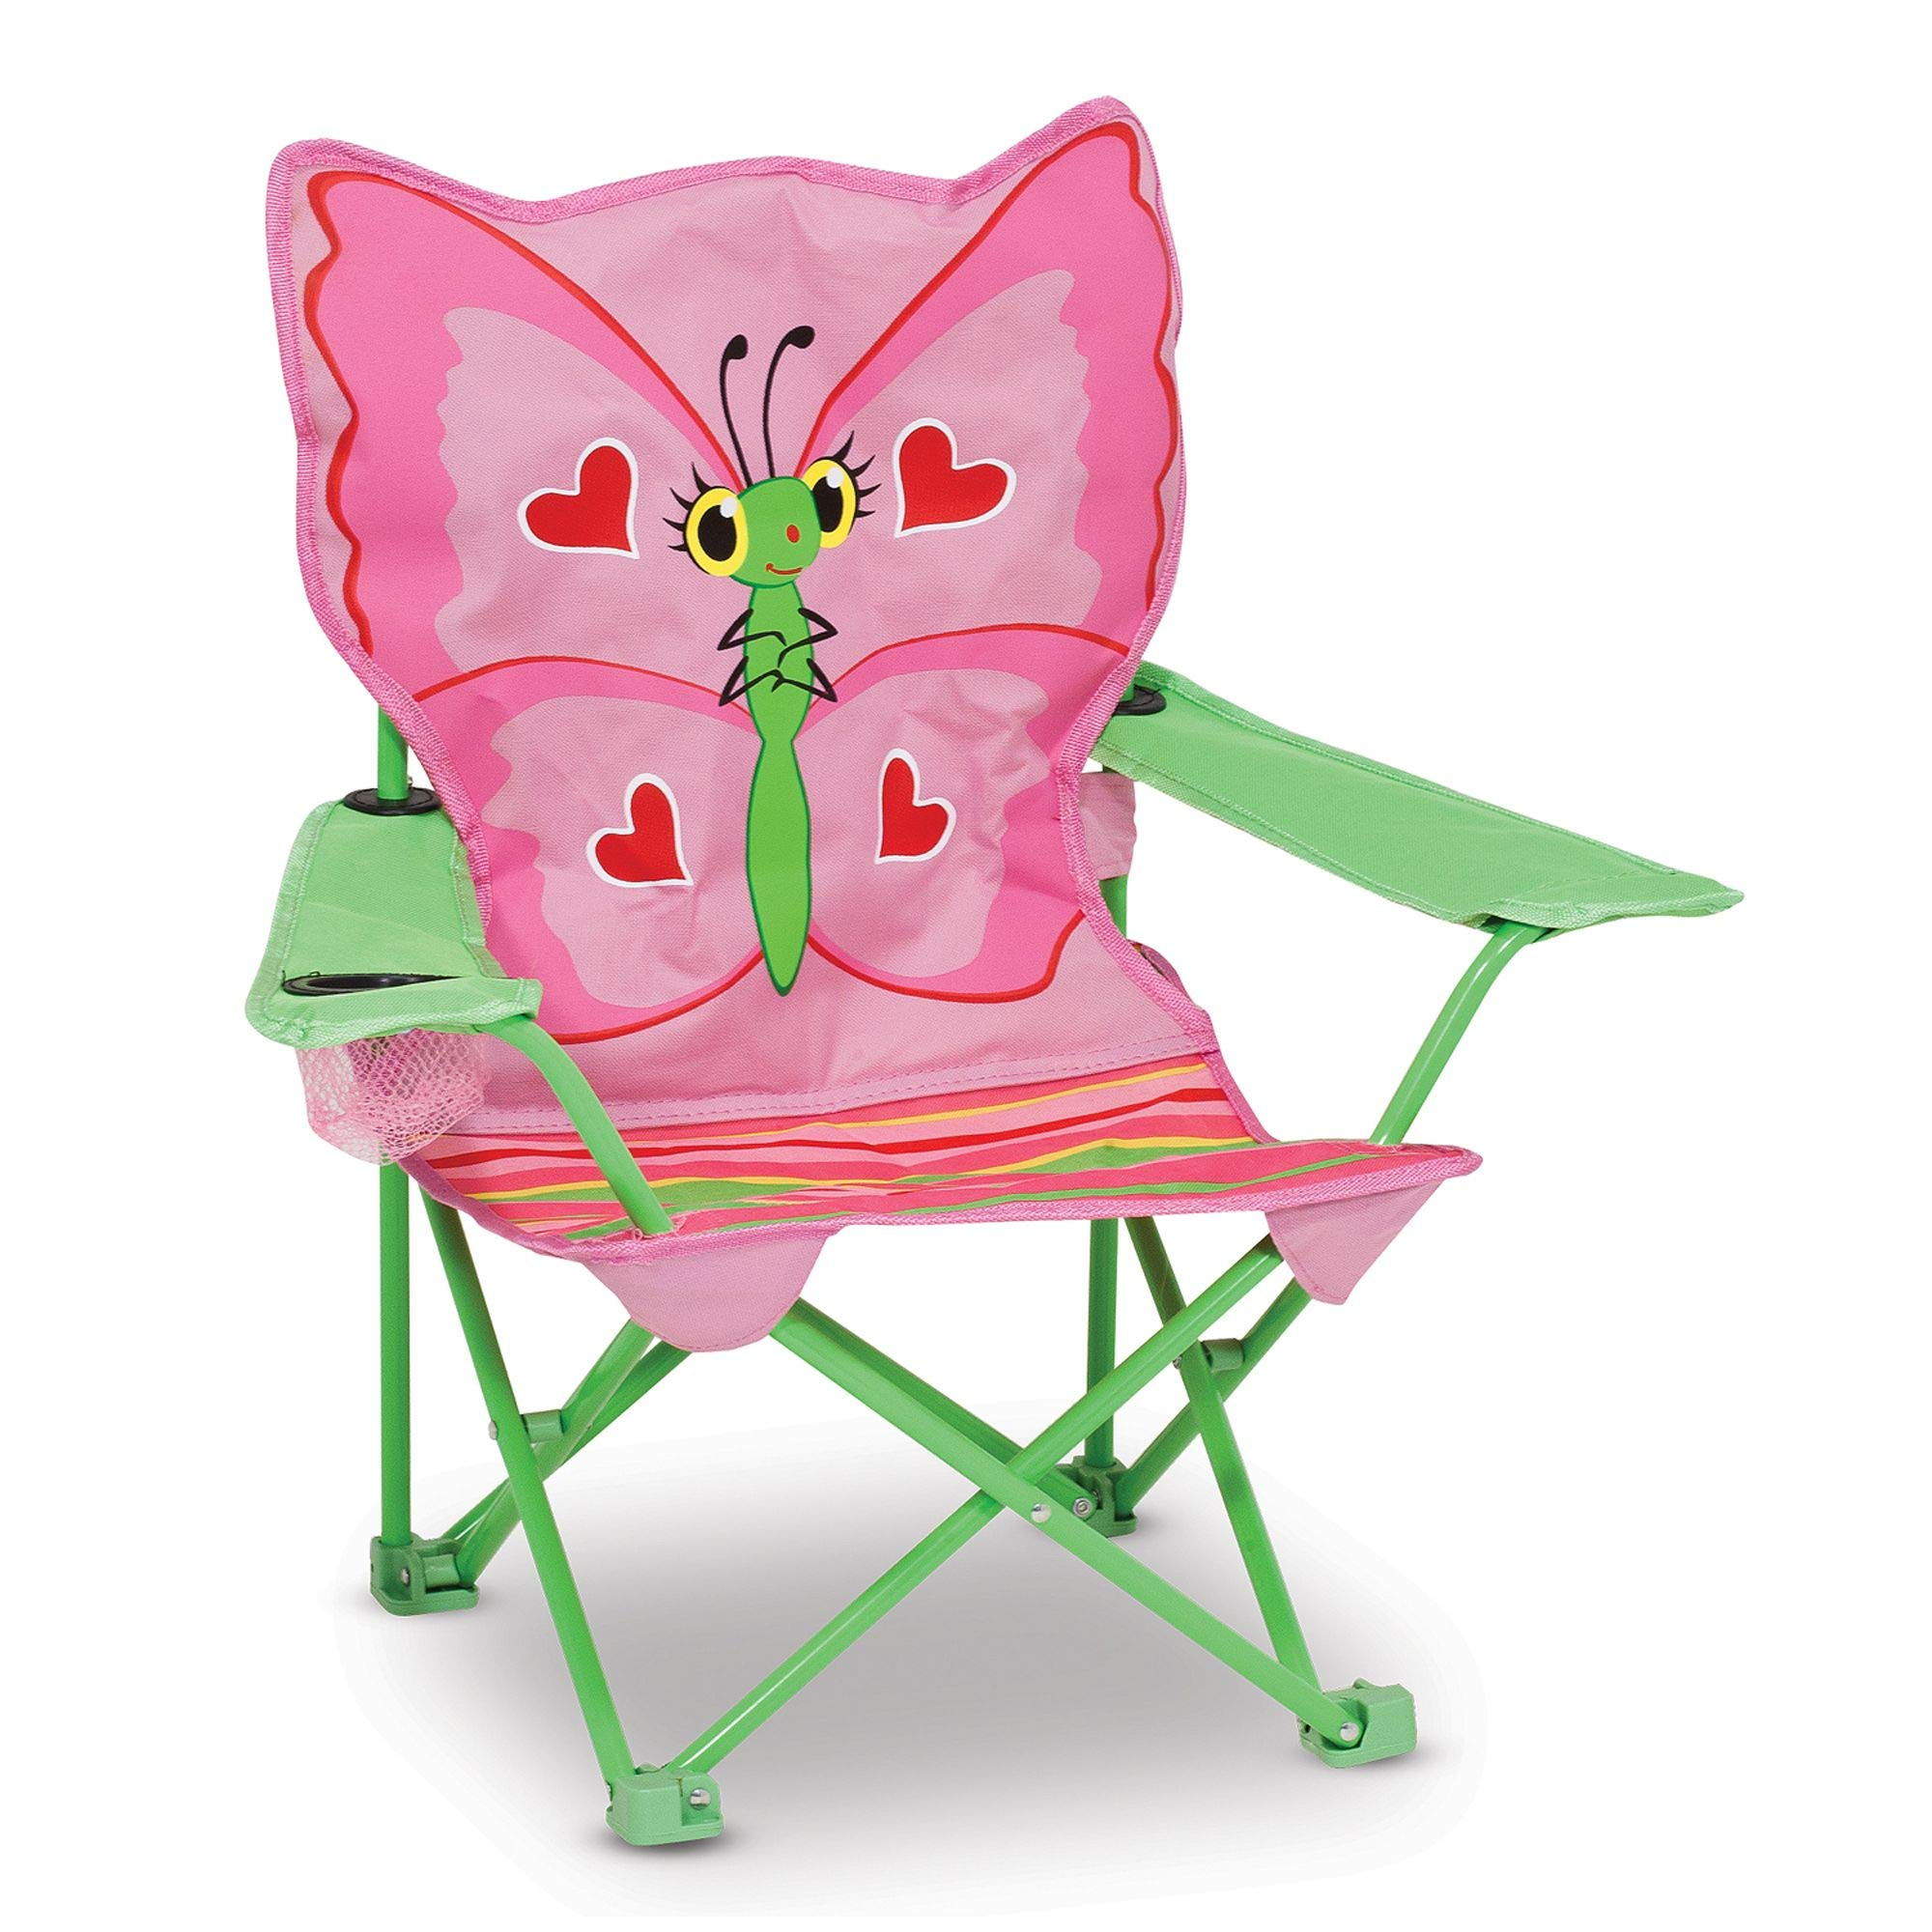 Melissa & Doug Bella Butterfly Child's Outdoor Chair, Easy to Open, Handy Cup Holder, Cleanable Materials, Carrying Bag, 23.7'' H x 6.7'' W x 6.7'' L